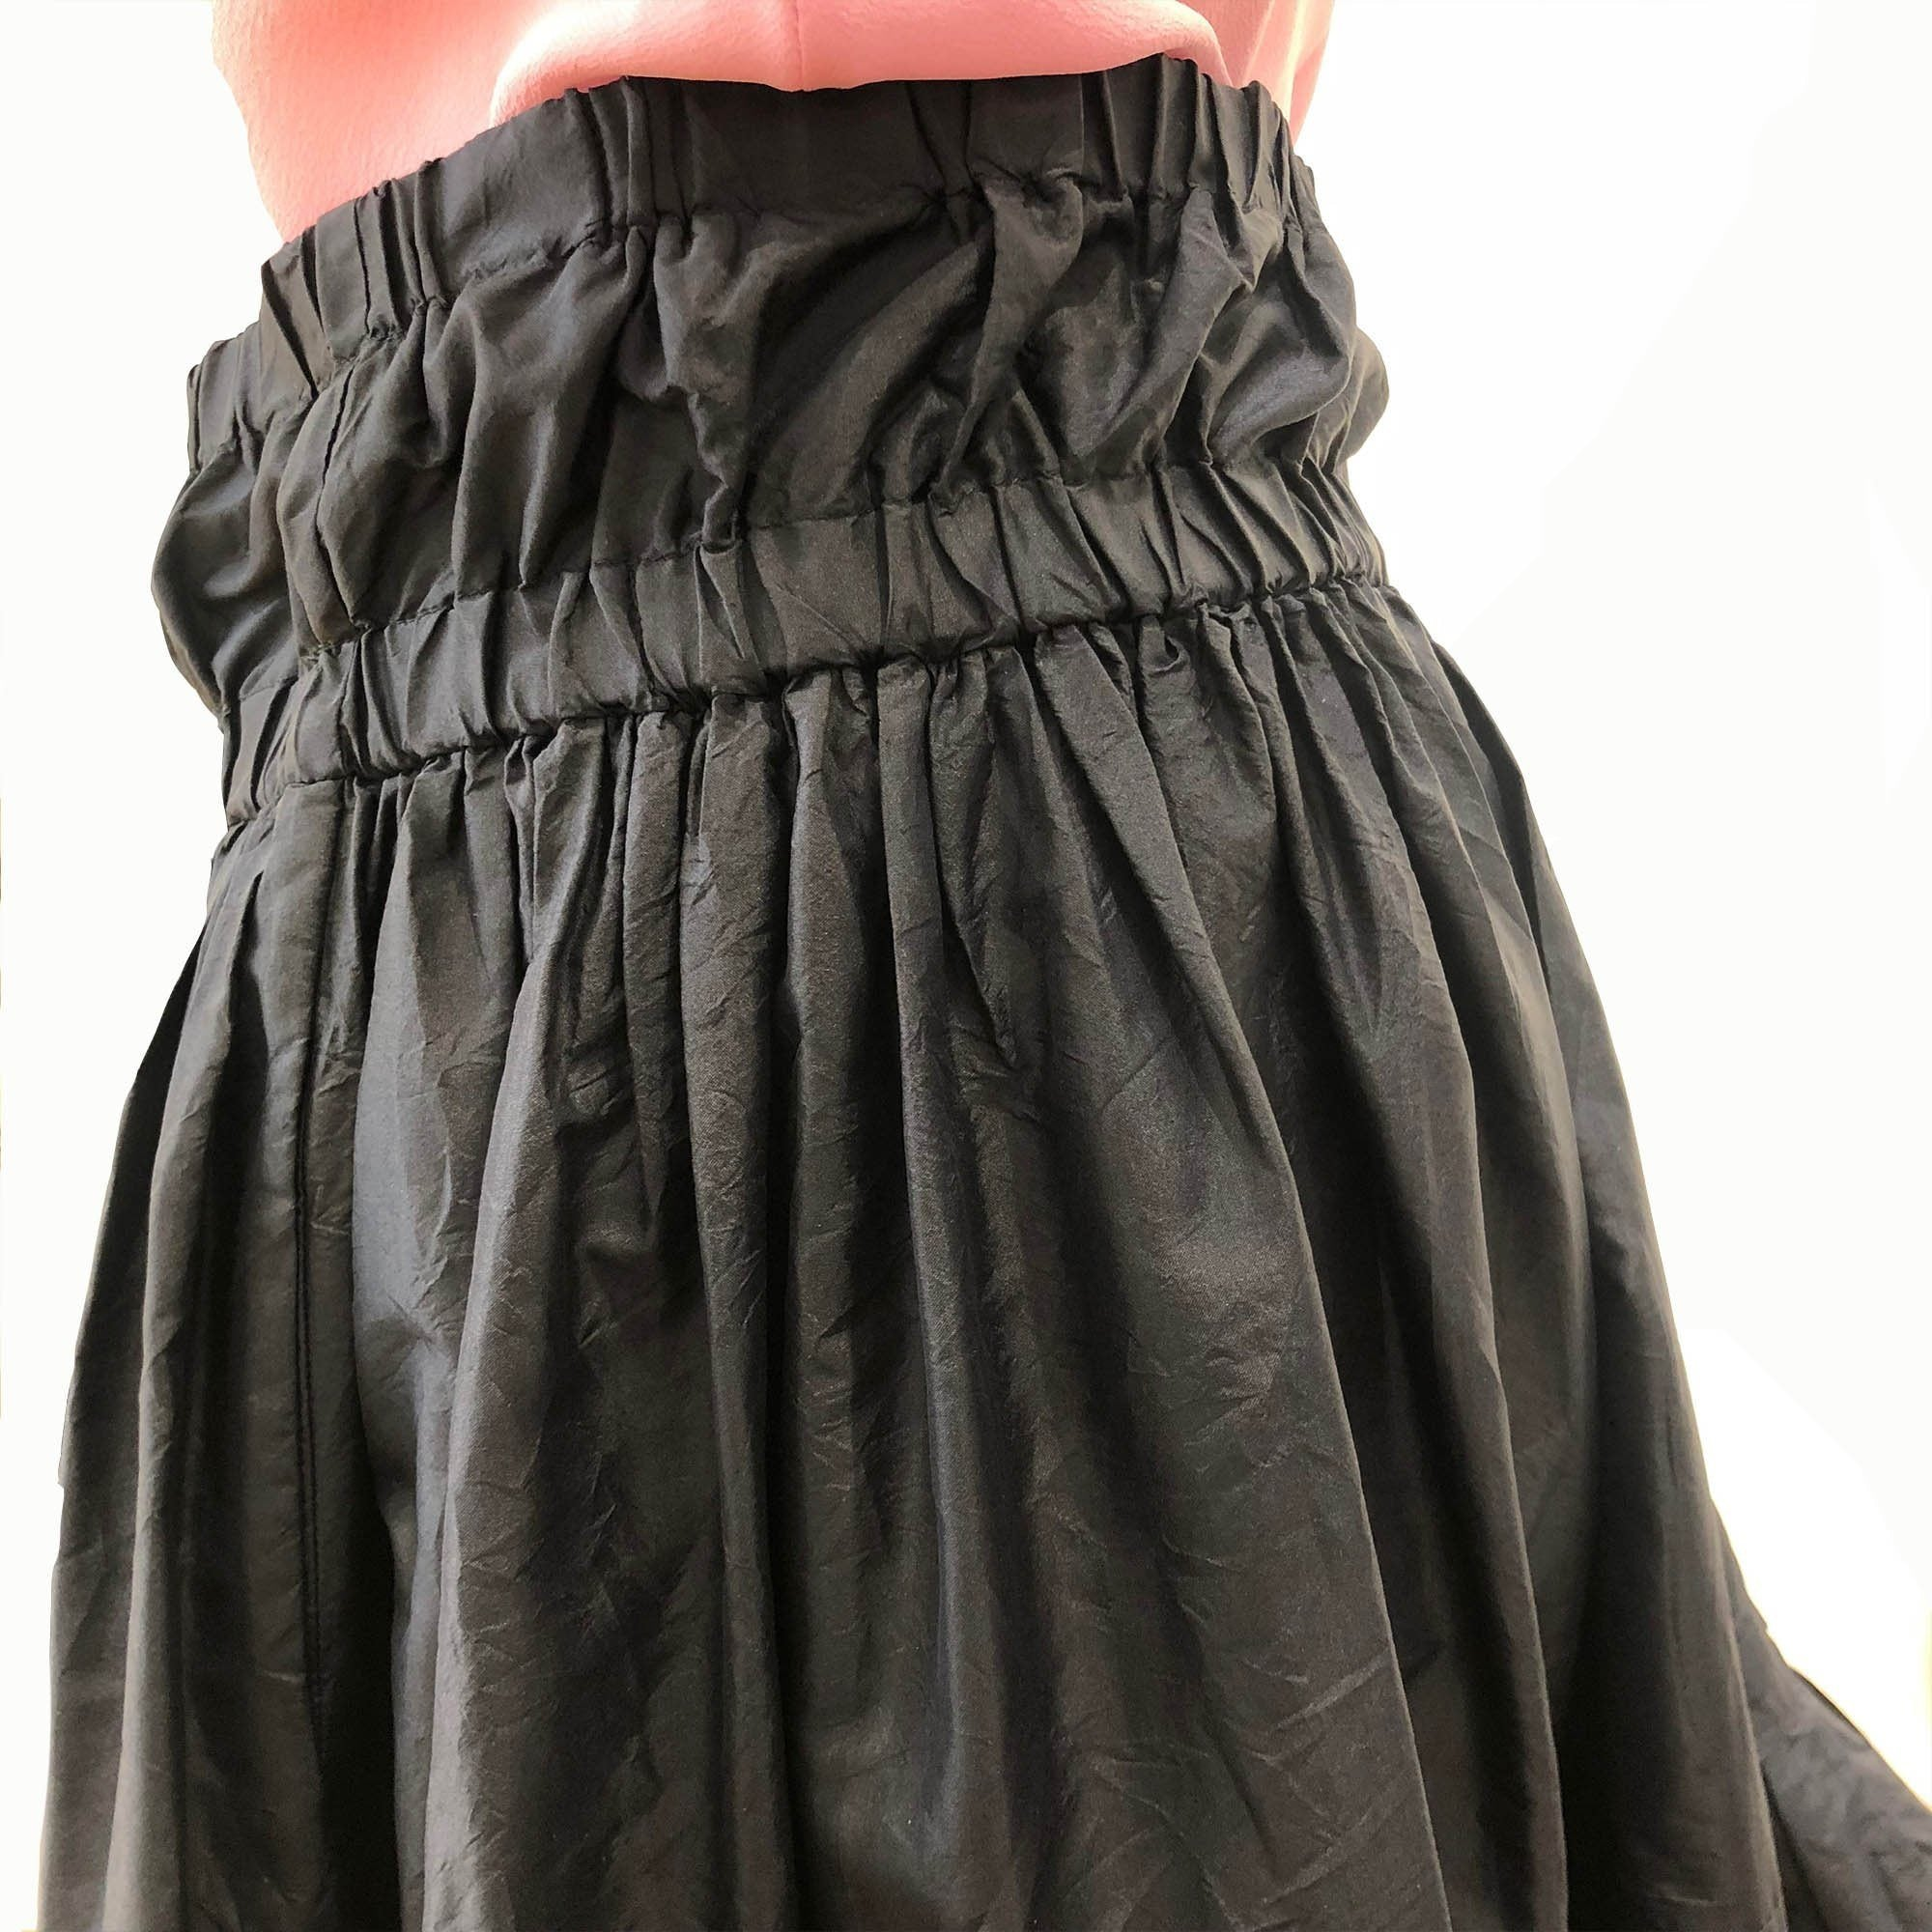 Roberto Cavalli Pleated Black Flare Ruffle Skirt